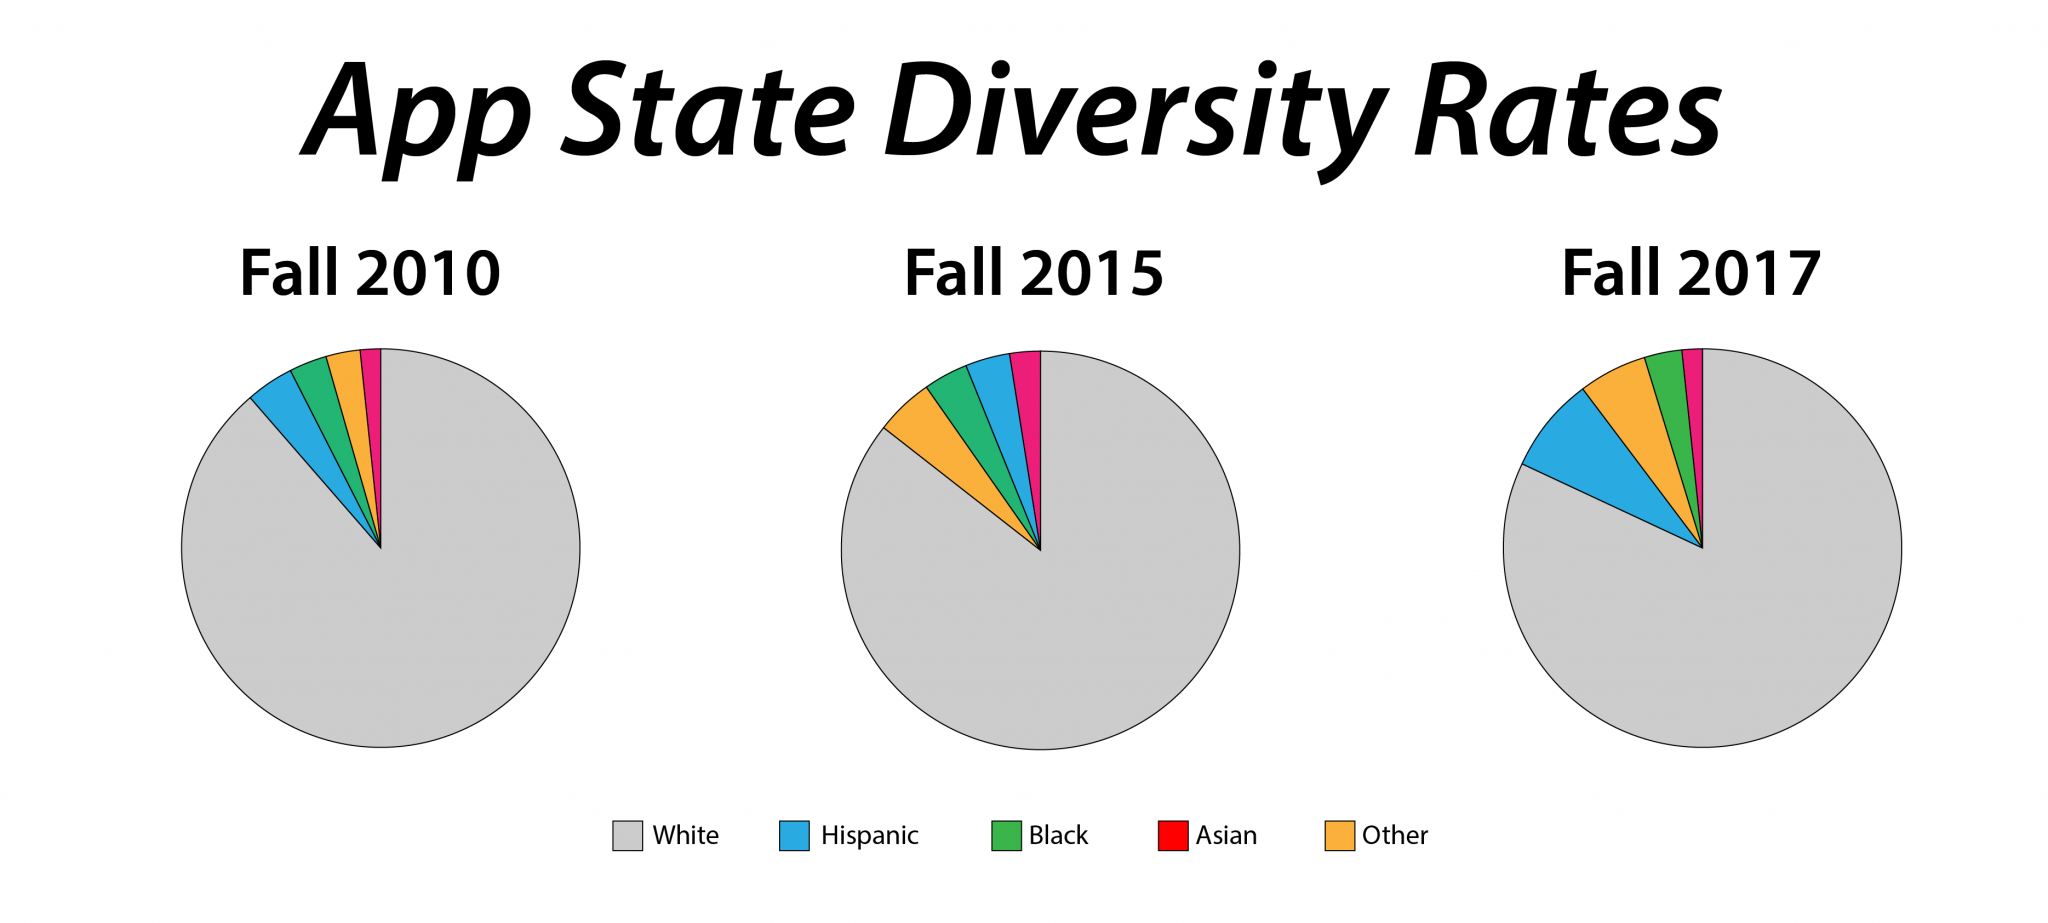 Statistics+measuring+Appalachian+State%27s+levels+of+diversity+the+past+few+years.